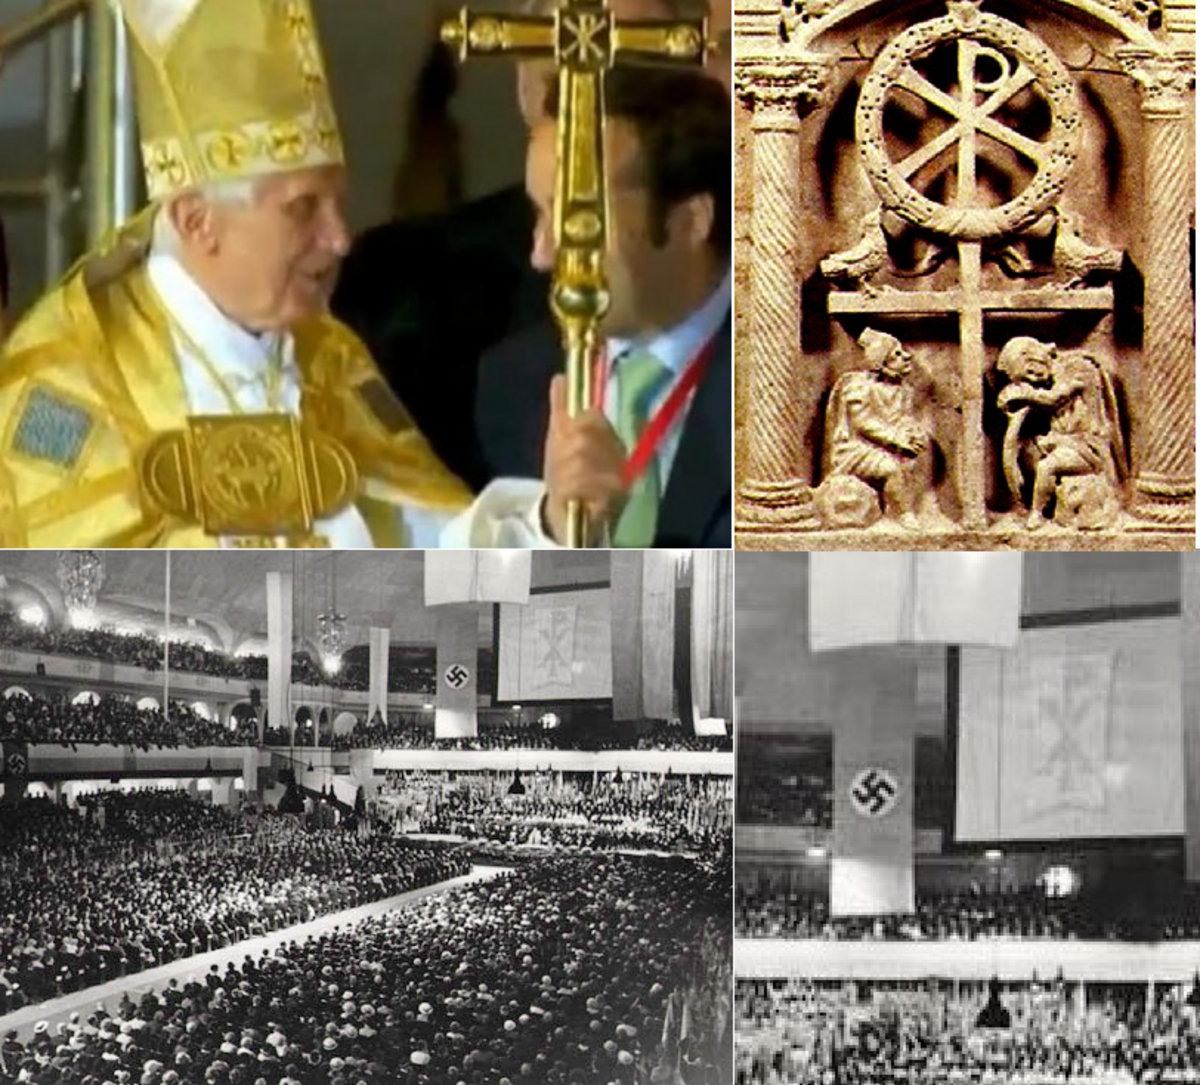 Pope Benedict with Chi Rho. Bottom: Welcome Celebration for Bishop Konrad Graf von Preysing in the Sportpalast, Berlin, 8 Sept 1935 Chi-Rho alongside the Nazi symbol.